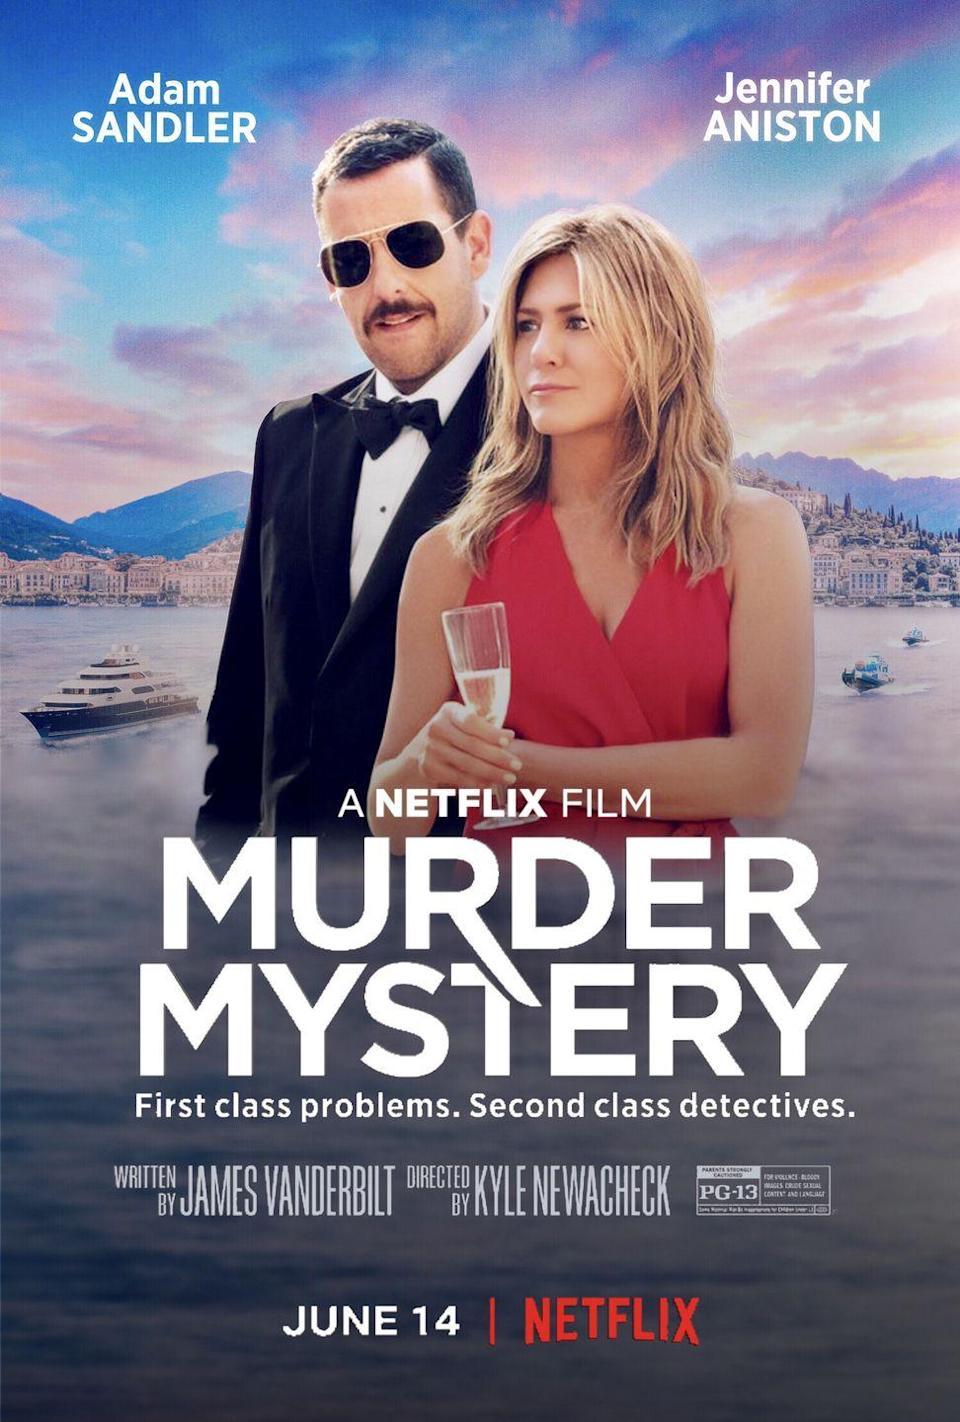 "<p>Prefer some light-hearted comedy mixed in with your mystery? There's plenty of laughs in this recent <a href=""https://www.goodhousekeeping.com/life/entertainment/g27507874/best-netflix-original-movies/"" rel=""nofollow noopener"" target=""_blank"" data-ylk=""slk:Netflix original"" class=""link rapid-noclick-resp"">Netflix original</a>, which stars Adam Sandler and Jennifer Aniston as a married couple who become involved in a murder investigation on a billionaire's yacht.</p><p><a class=""link rapid-noclick-resp"" href=""https://www.netflix.com/title/80242619"" rel=""nofollow noopener"" target=""_blank"" data-ylk=""slk:WATCH ON NETFLIX"">WATCH ON NETFLIX</a></p><p><strong>RELATED: </strong><a href=""https://www.goodhousekeeping.com/life/entertainment/a28007769/adam-sandler-jennifer-aniston-netflix-murder-mystery/"" rel=""nofollow noopener"" target=""_blank"" data-ylk=""slk:Adam Sandler and Jennifer Aniston Have THE BEST Story From Filming Netflix's 'Murder Mystery'"" class=""link rapid-noclick-resp"">Adam Sandler and Jennifer Aniston Have THE BEST Story From Filming Netflix's 'Murder Mystery'</a></p>"